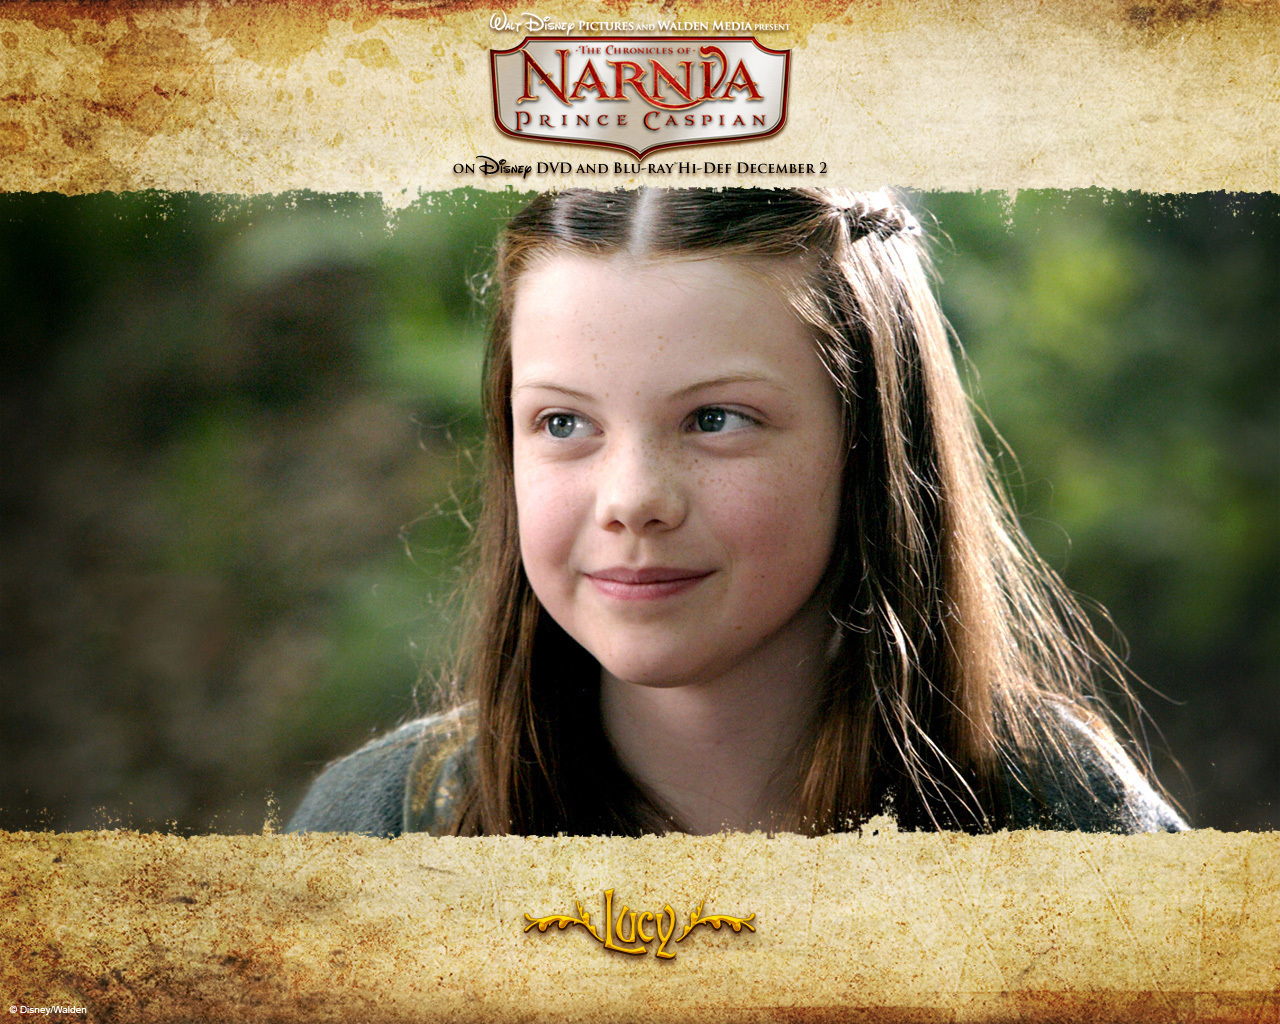 ¿Que personaje Disney? Lucy-the-chronicles-of-narnia-6899738-1280-1024